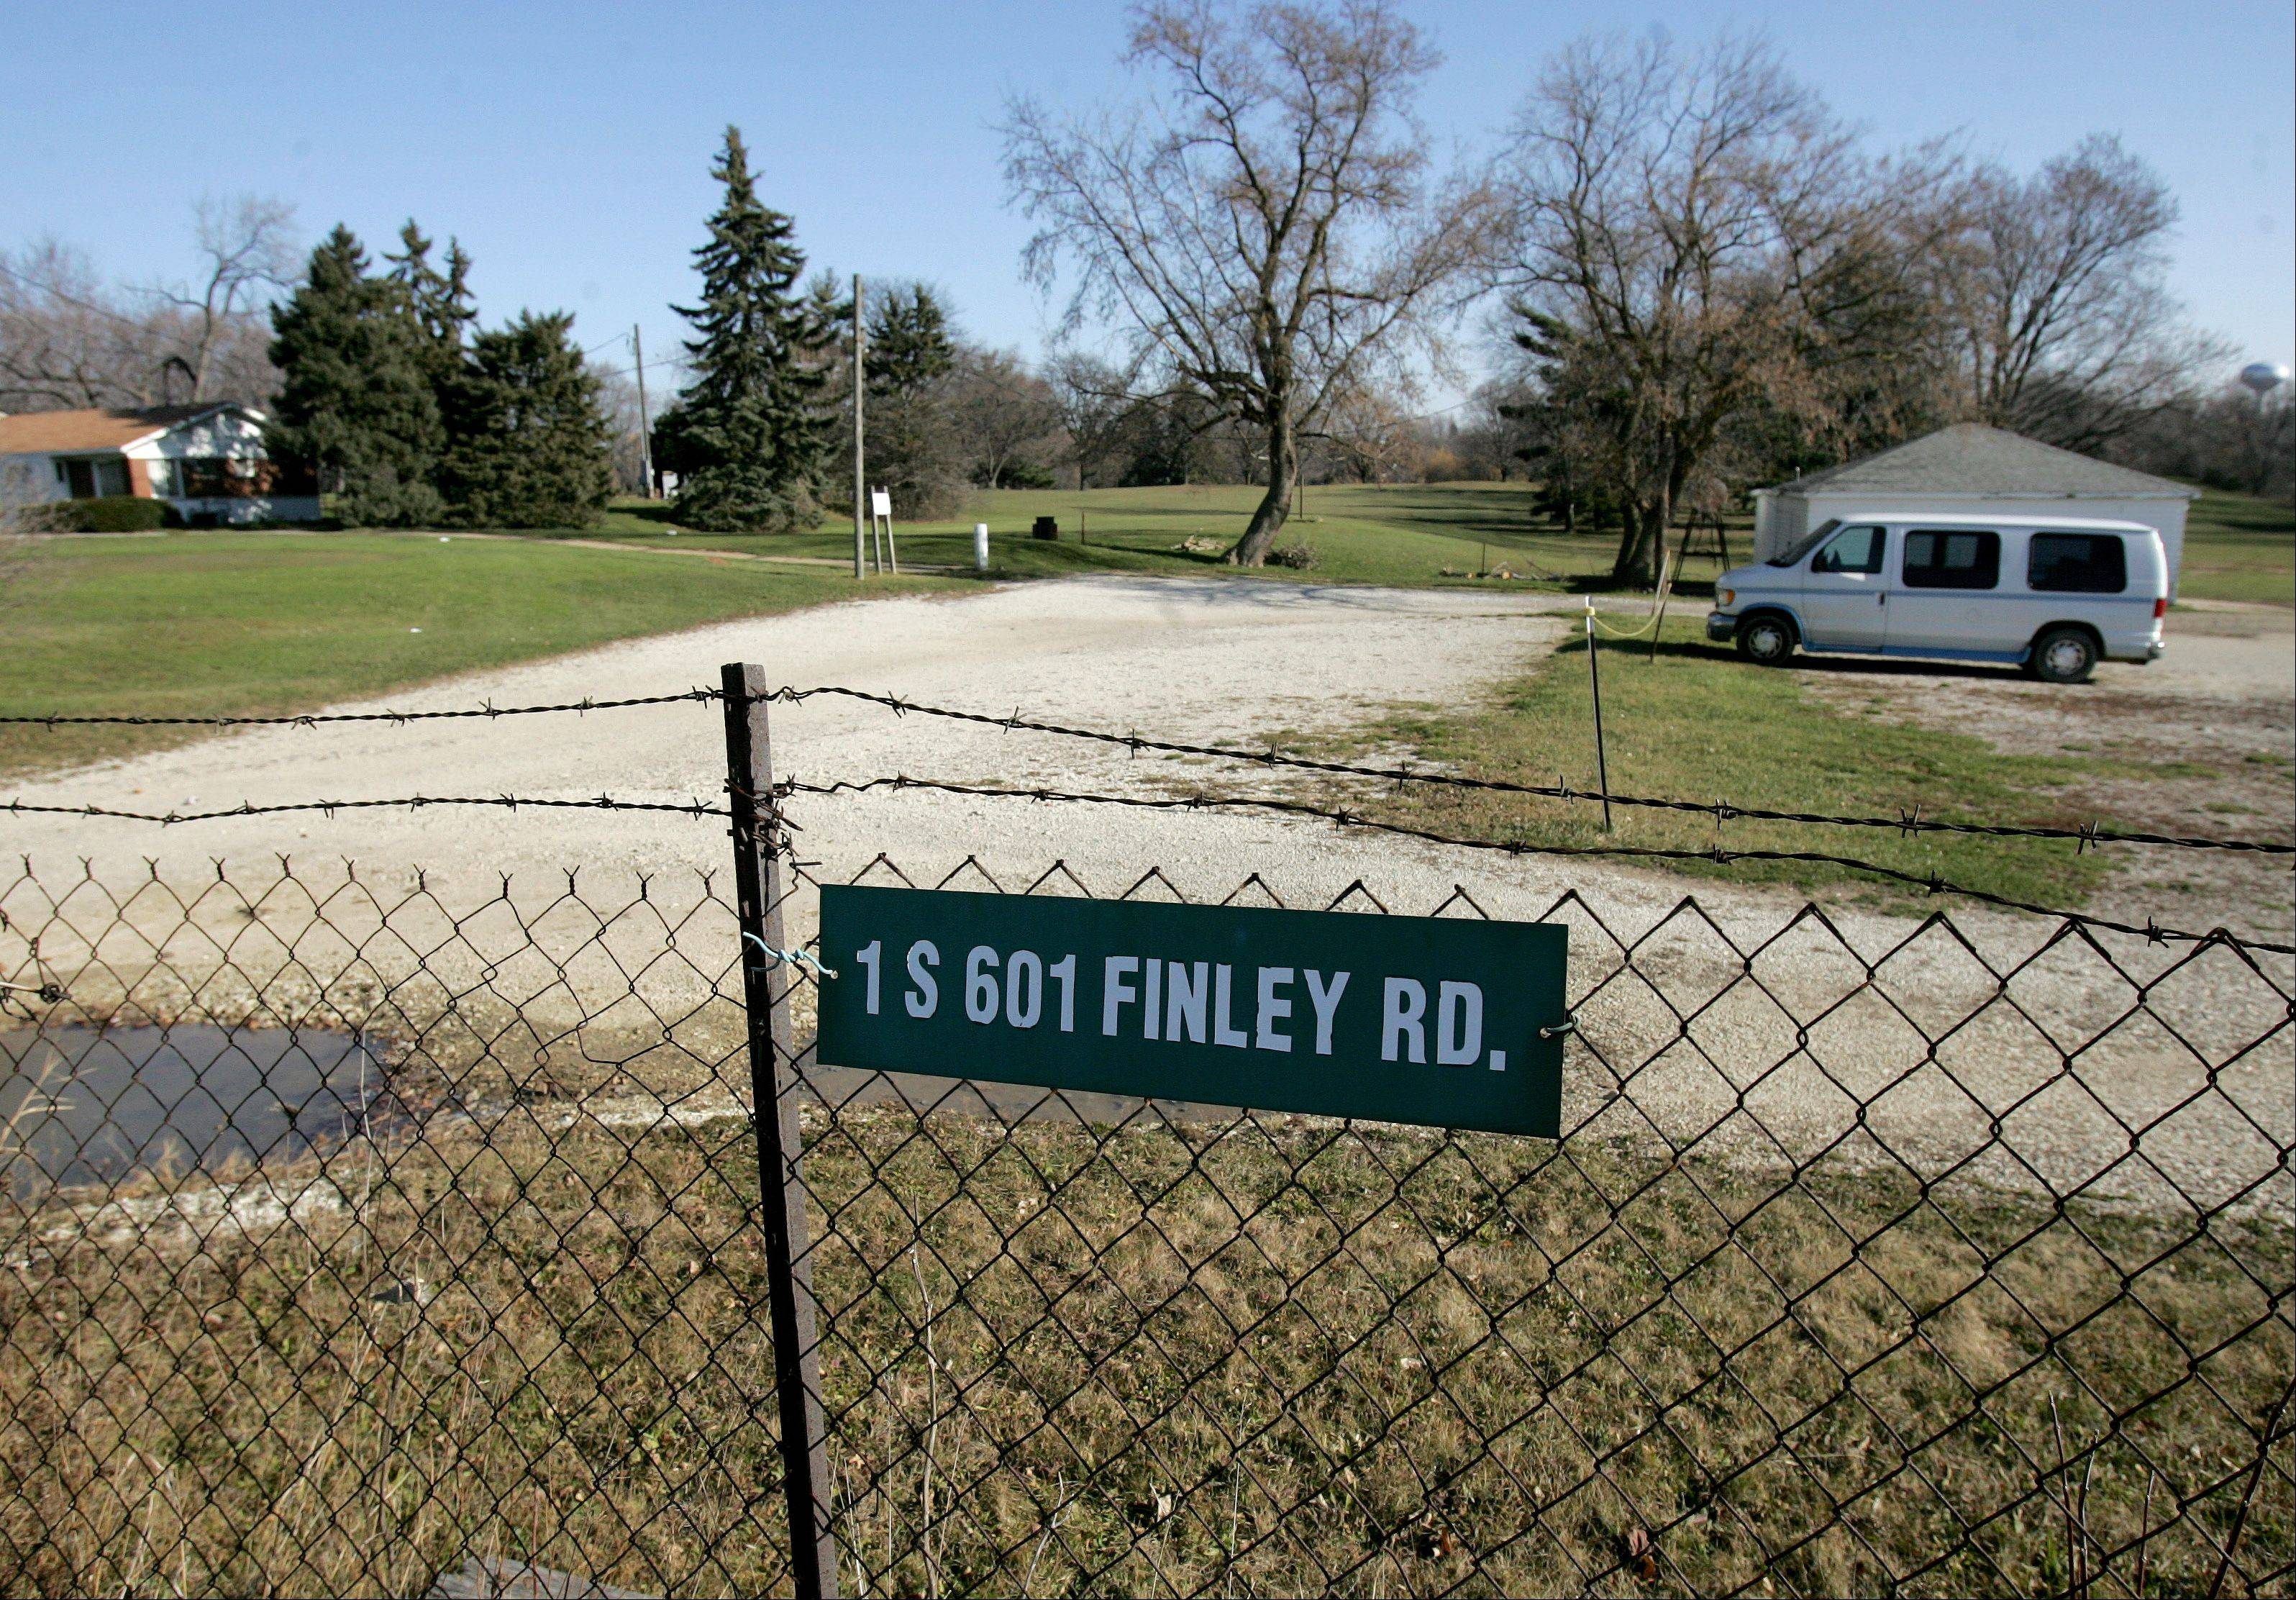 Lombard opposes rezoning for Ken-Loch golf course